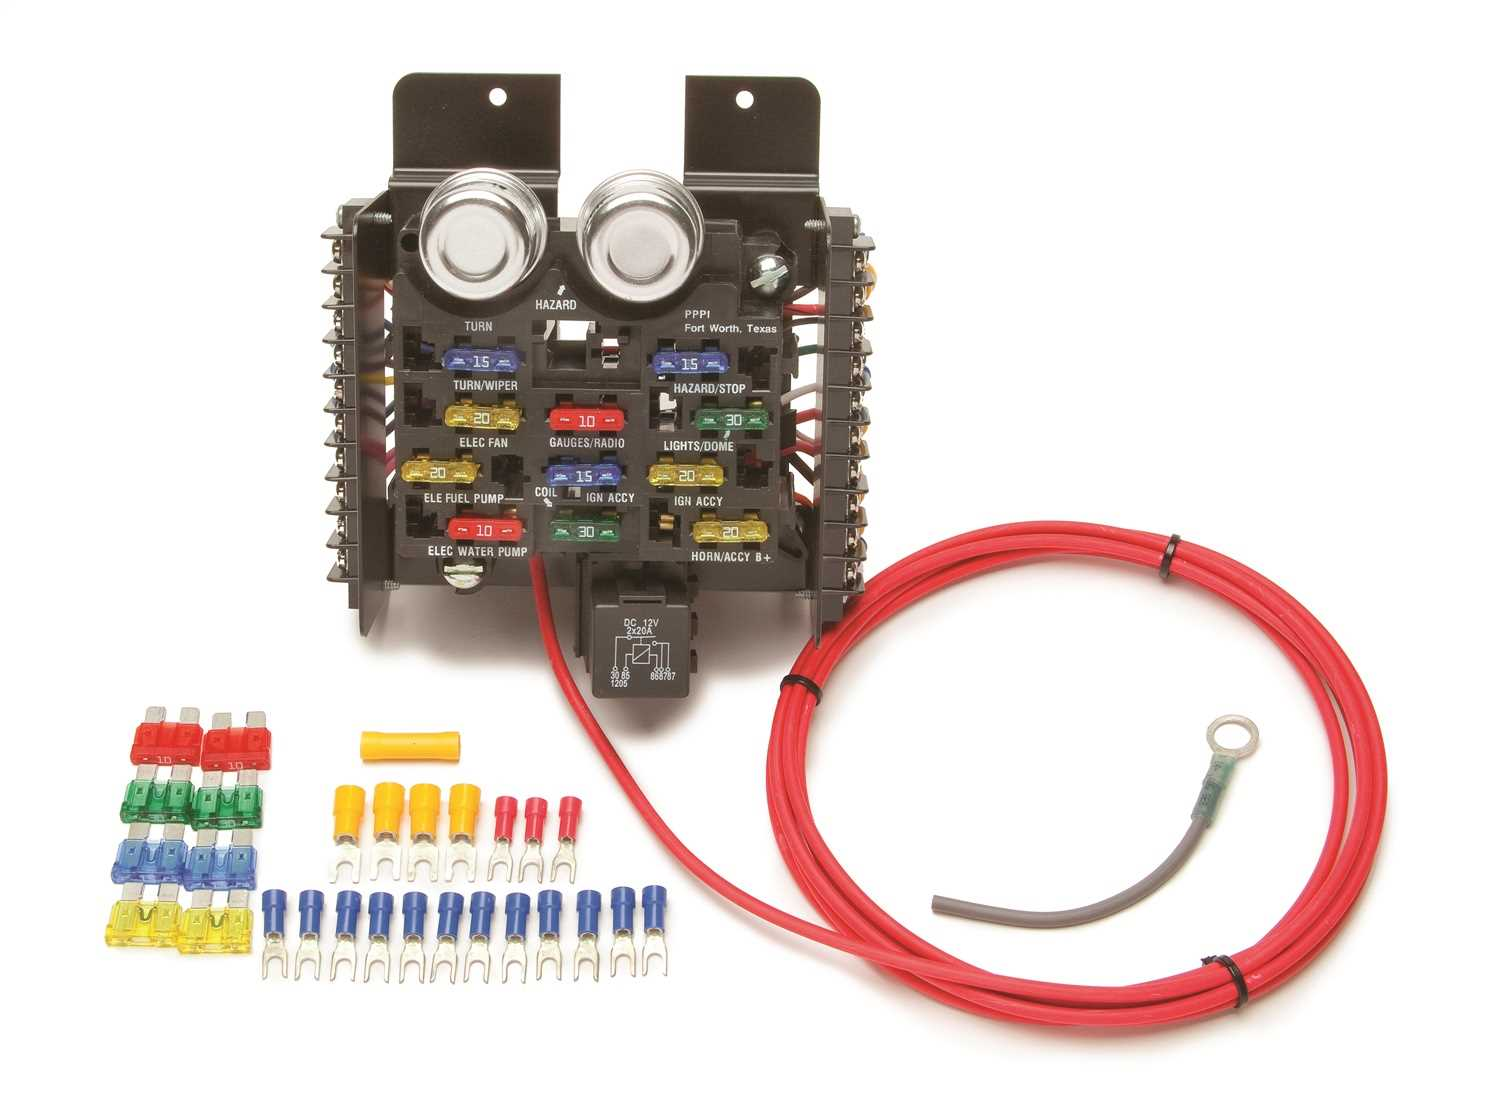 Painless Wiring 11 Fuse Compact Universal Race/Pro Street Fuse Block 50101  - 50101